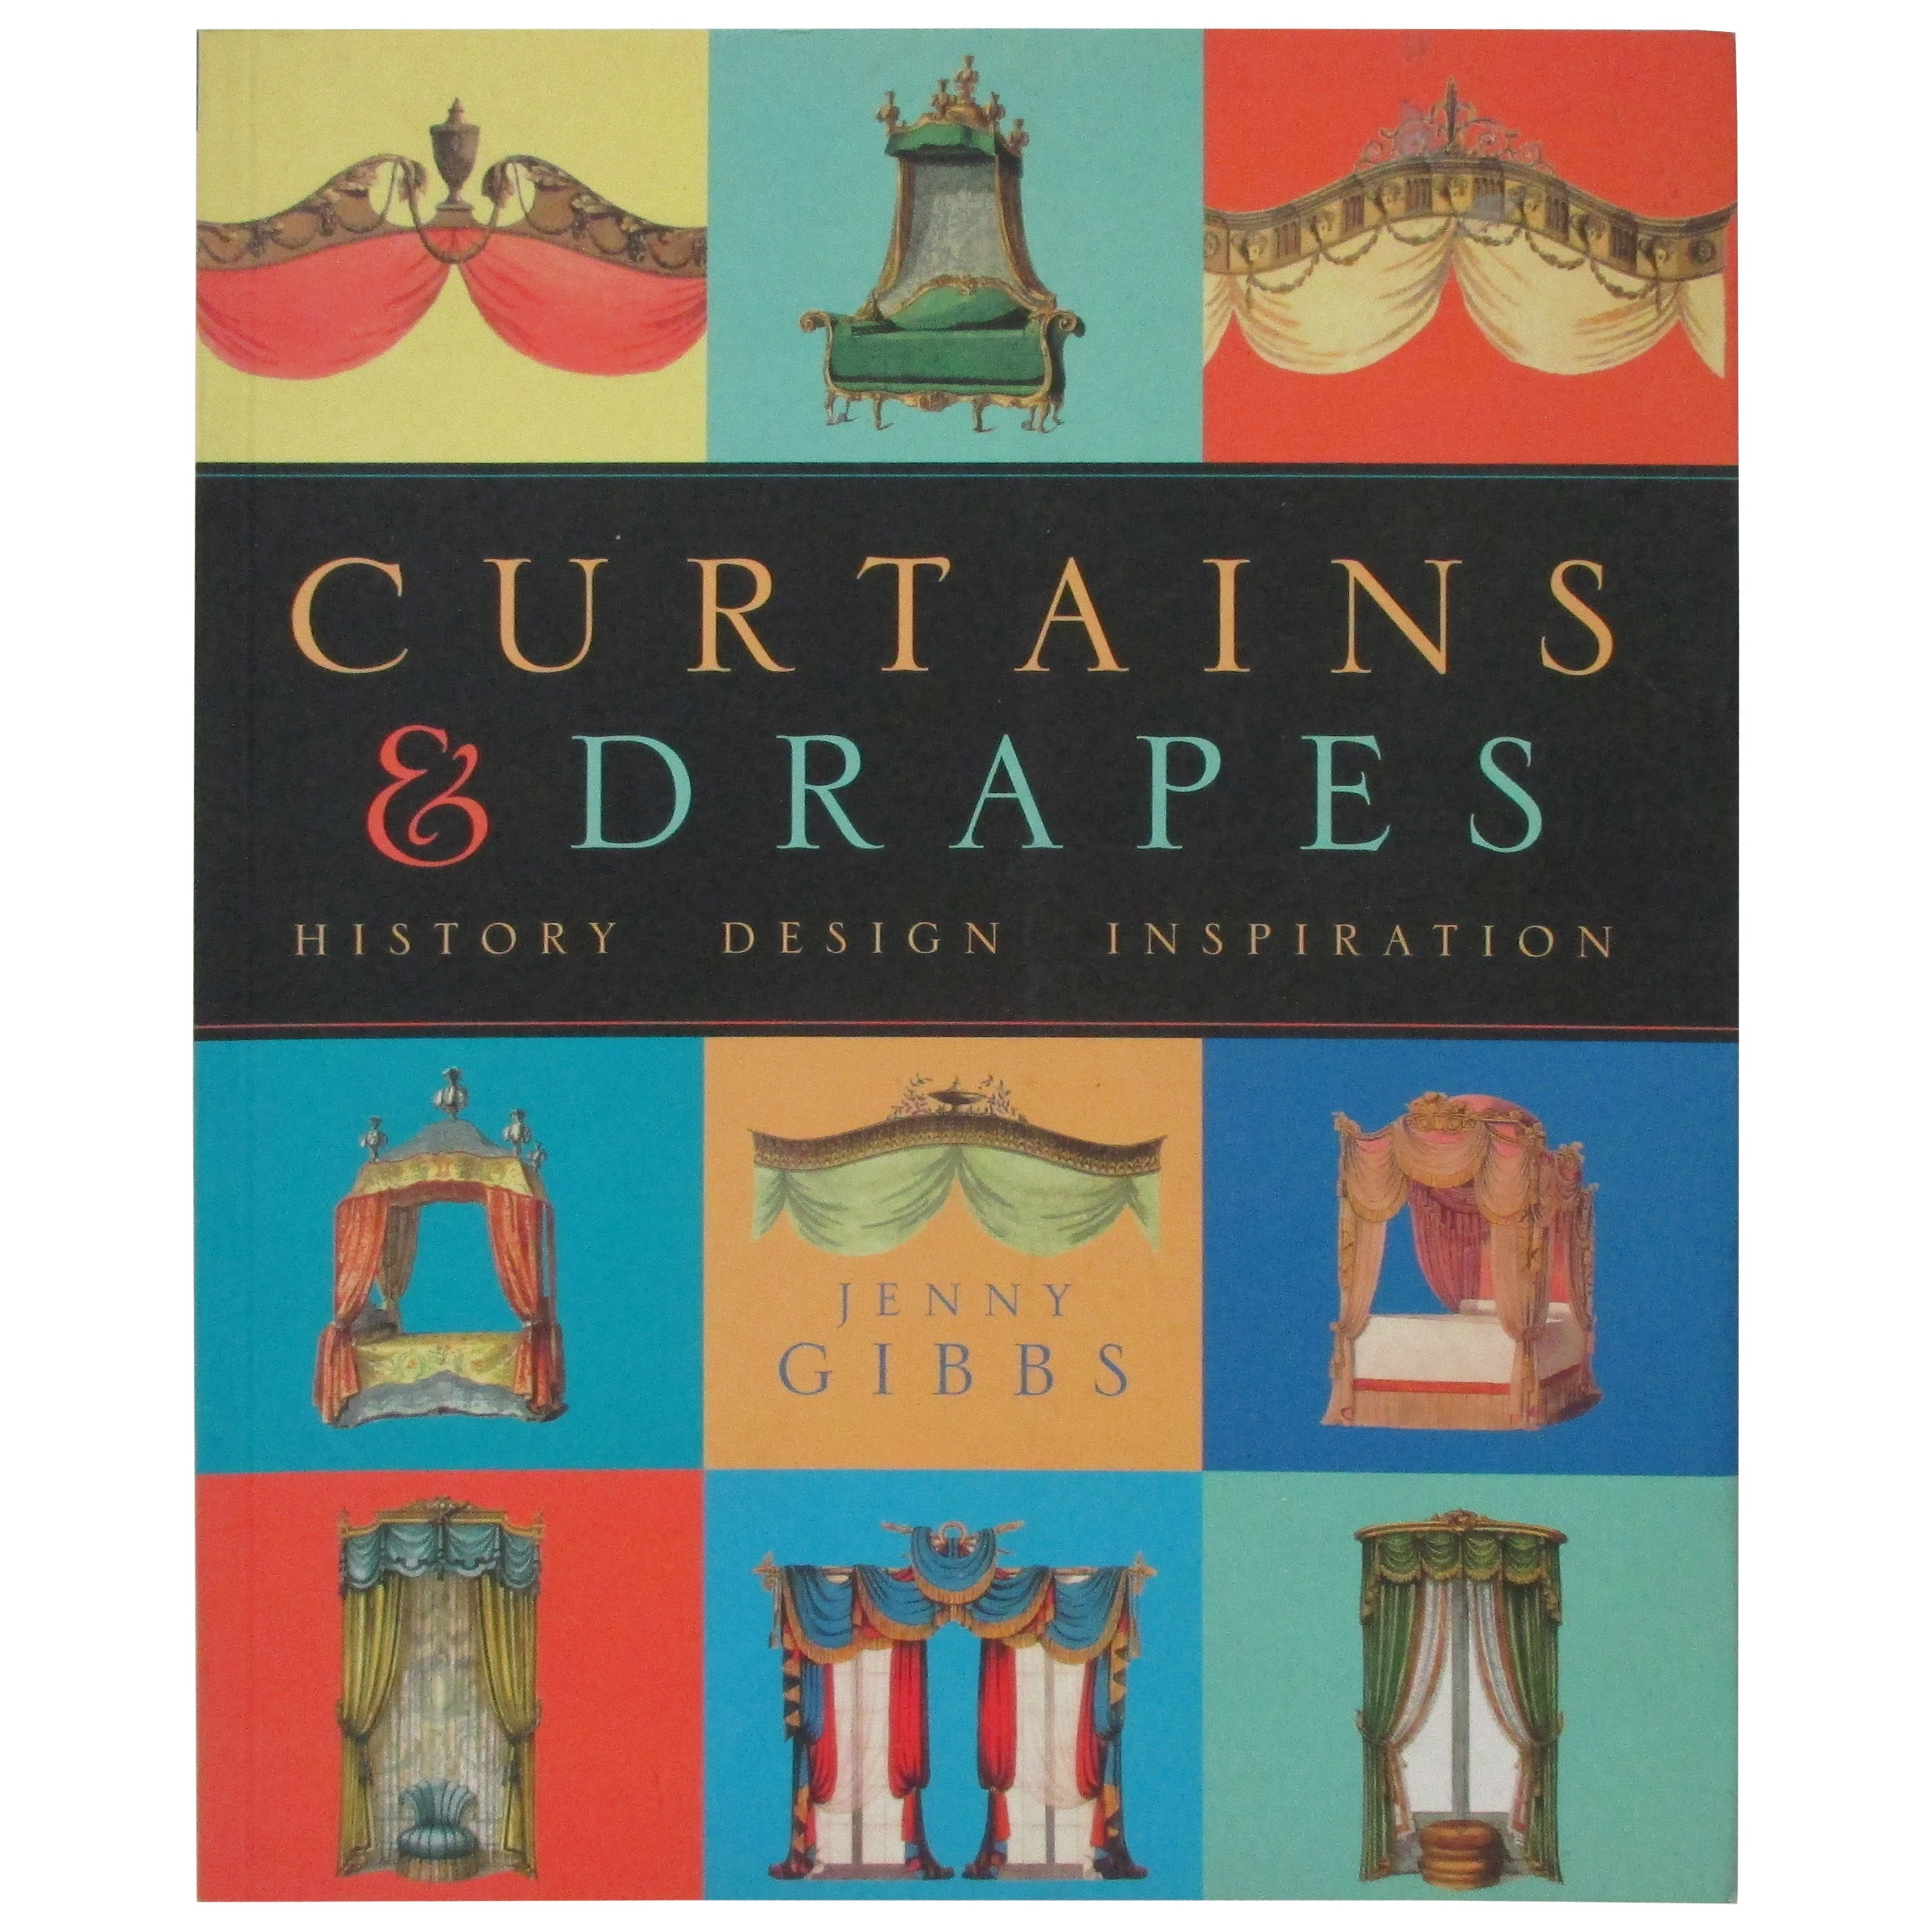 Curtains and Drapes: History, Design, Inspiration Softcover Decoration Book